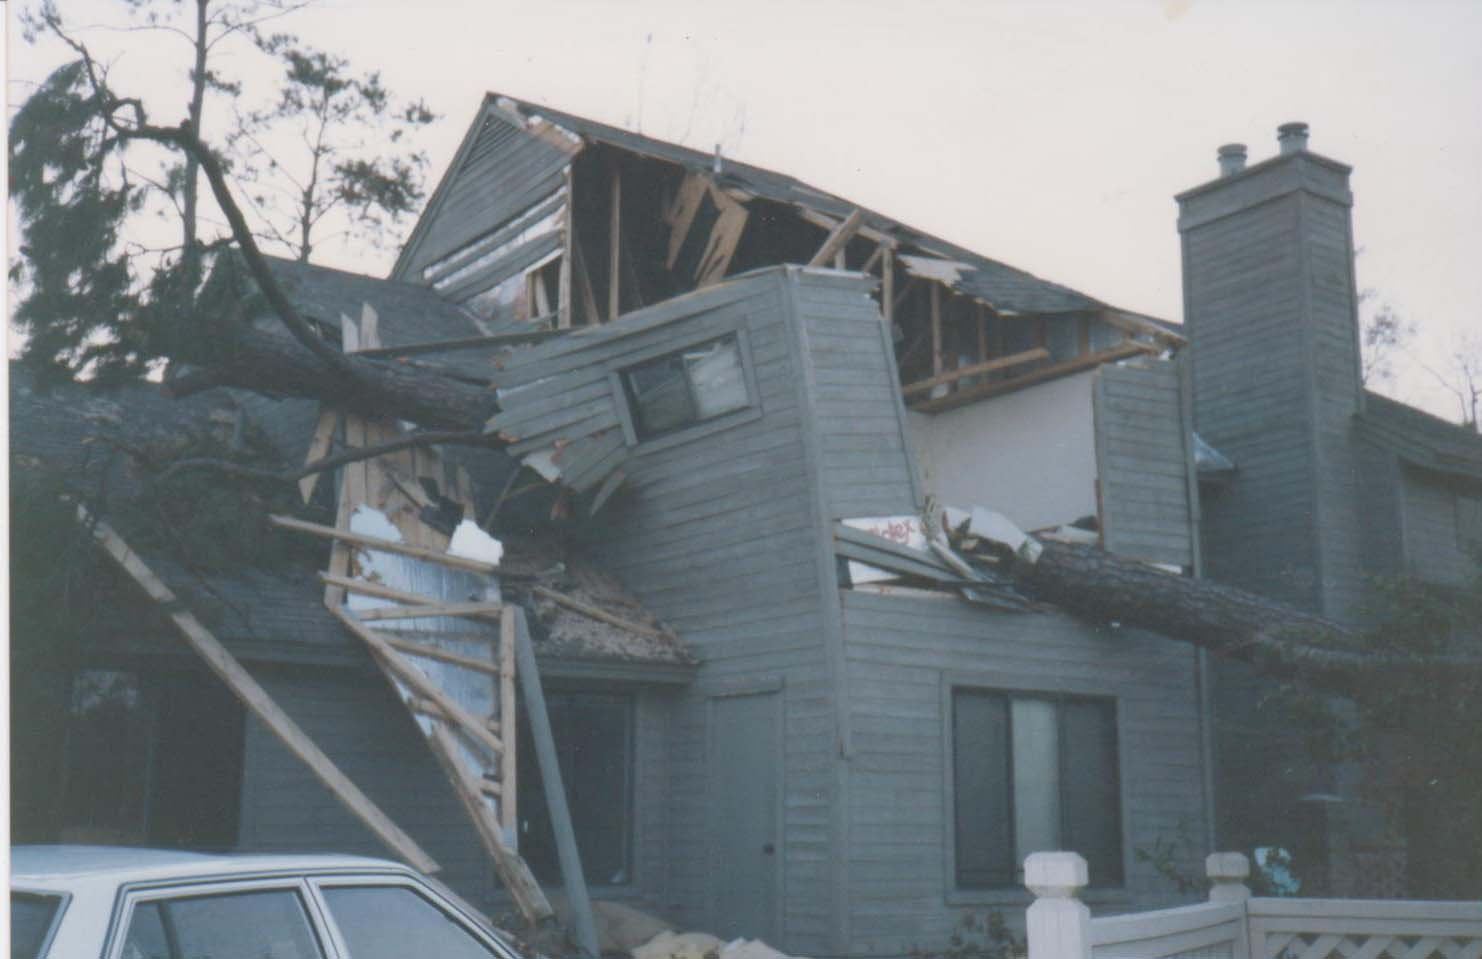 Hurricane Hugo: House with tree smashed in it